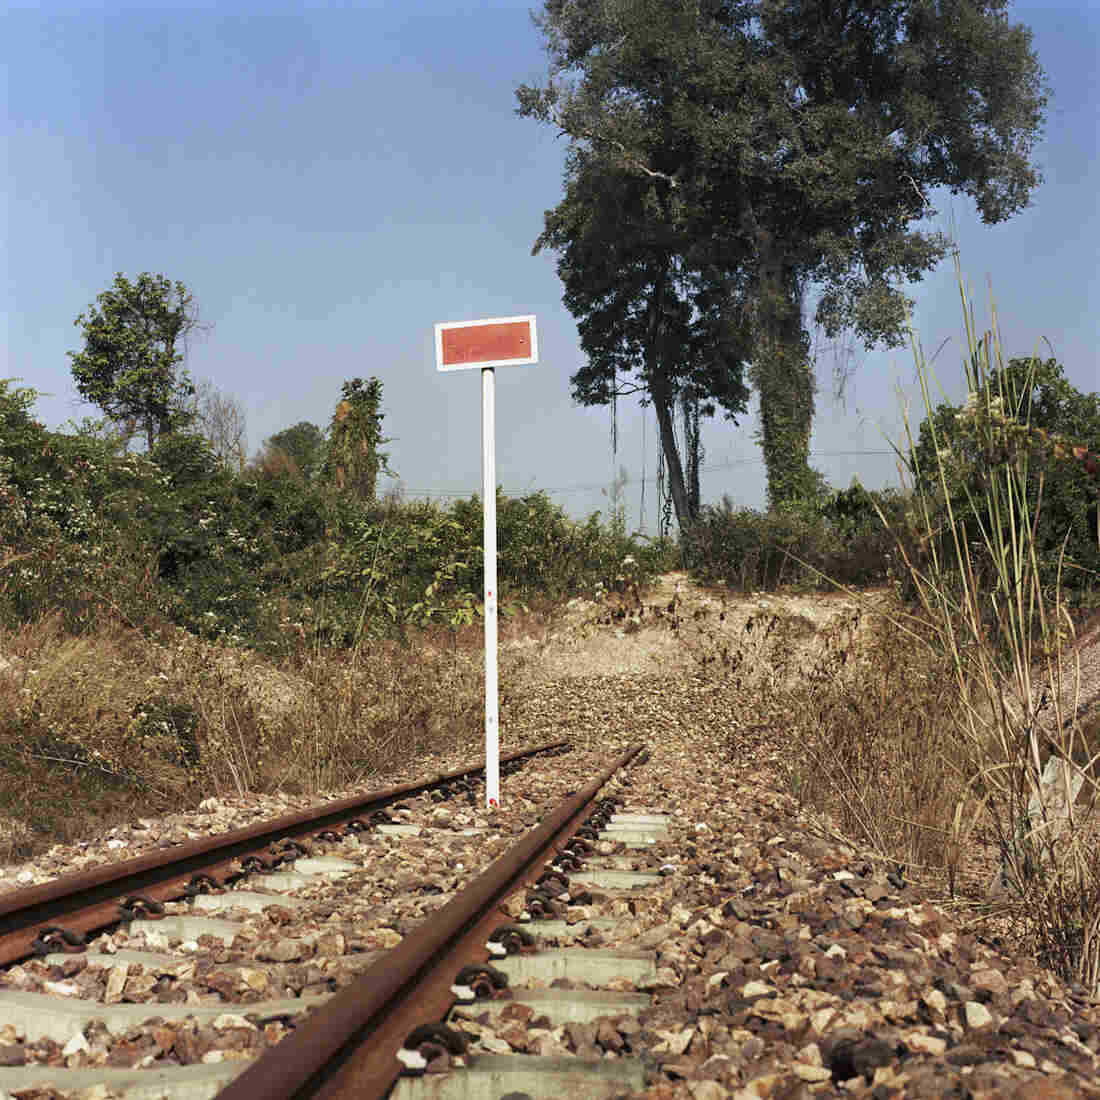 The existing rail track in Laos is an extension of the Thailand railway at the city of Nongkhai. This track crosses the Mekong River in Thailand and ends at the Laos border.